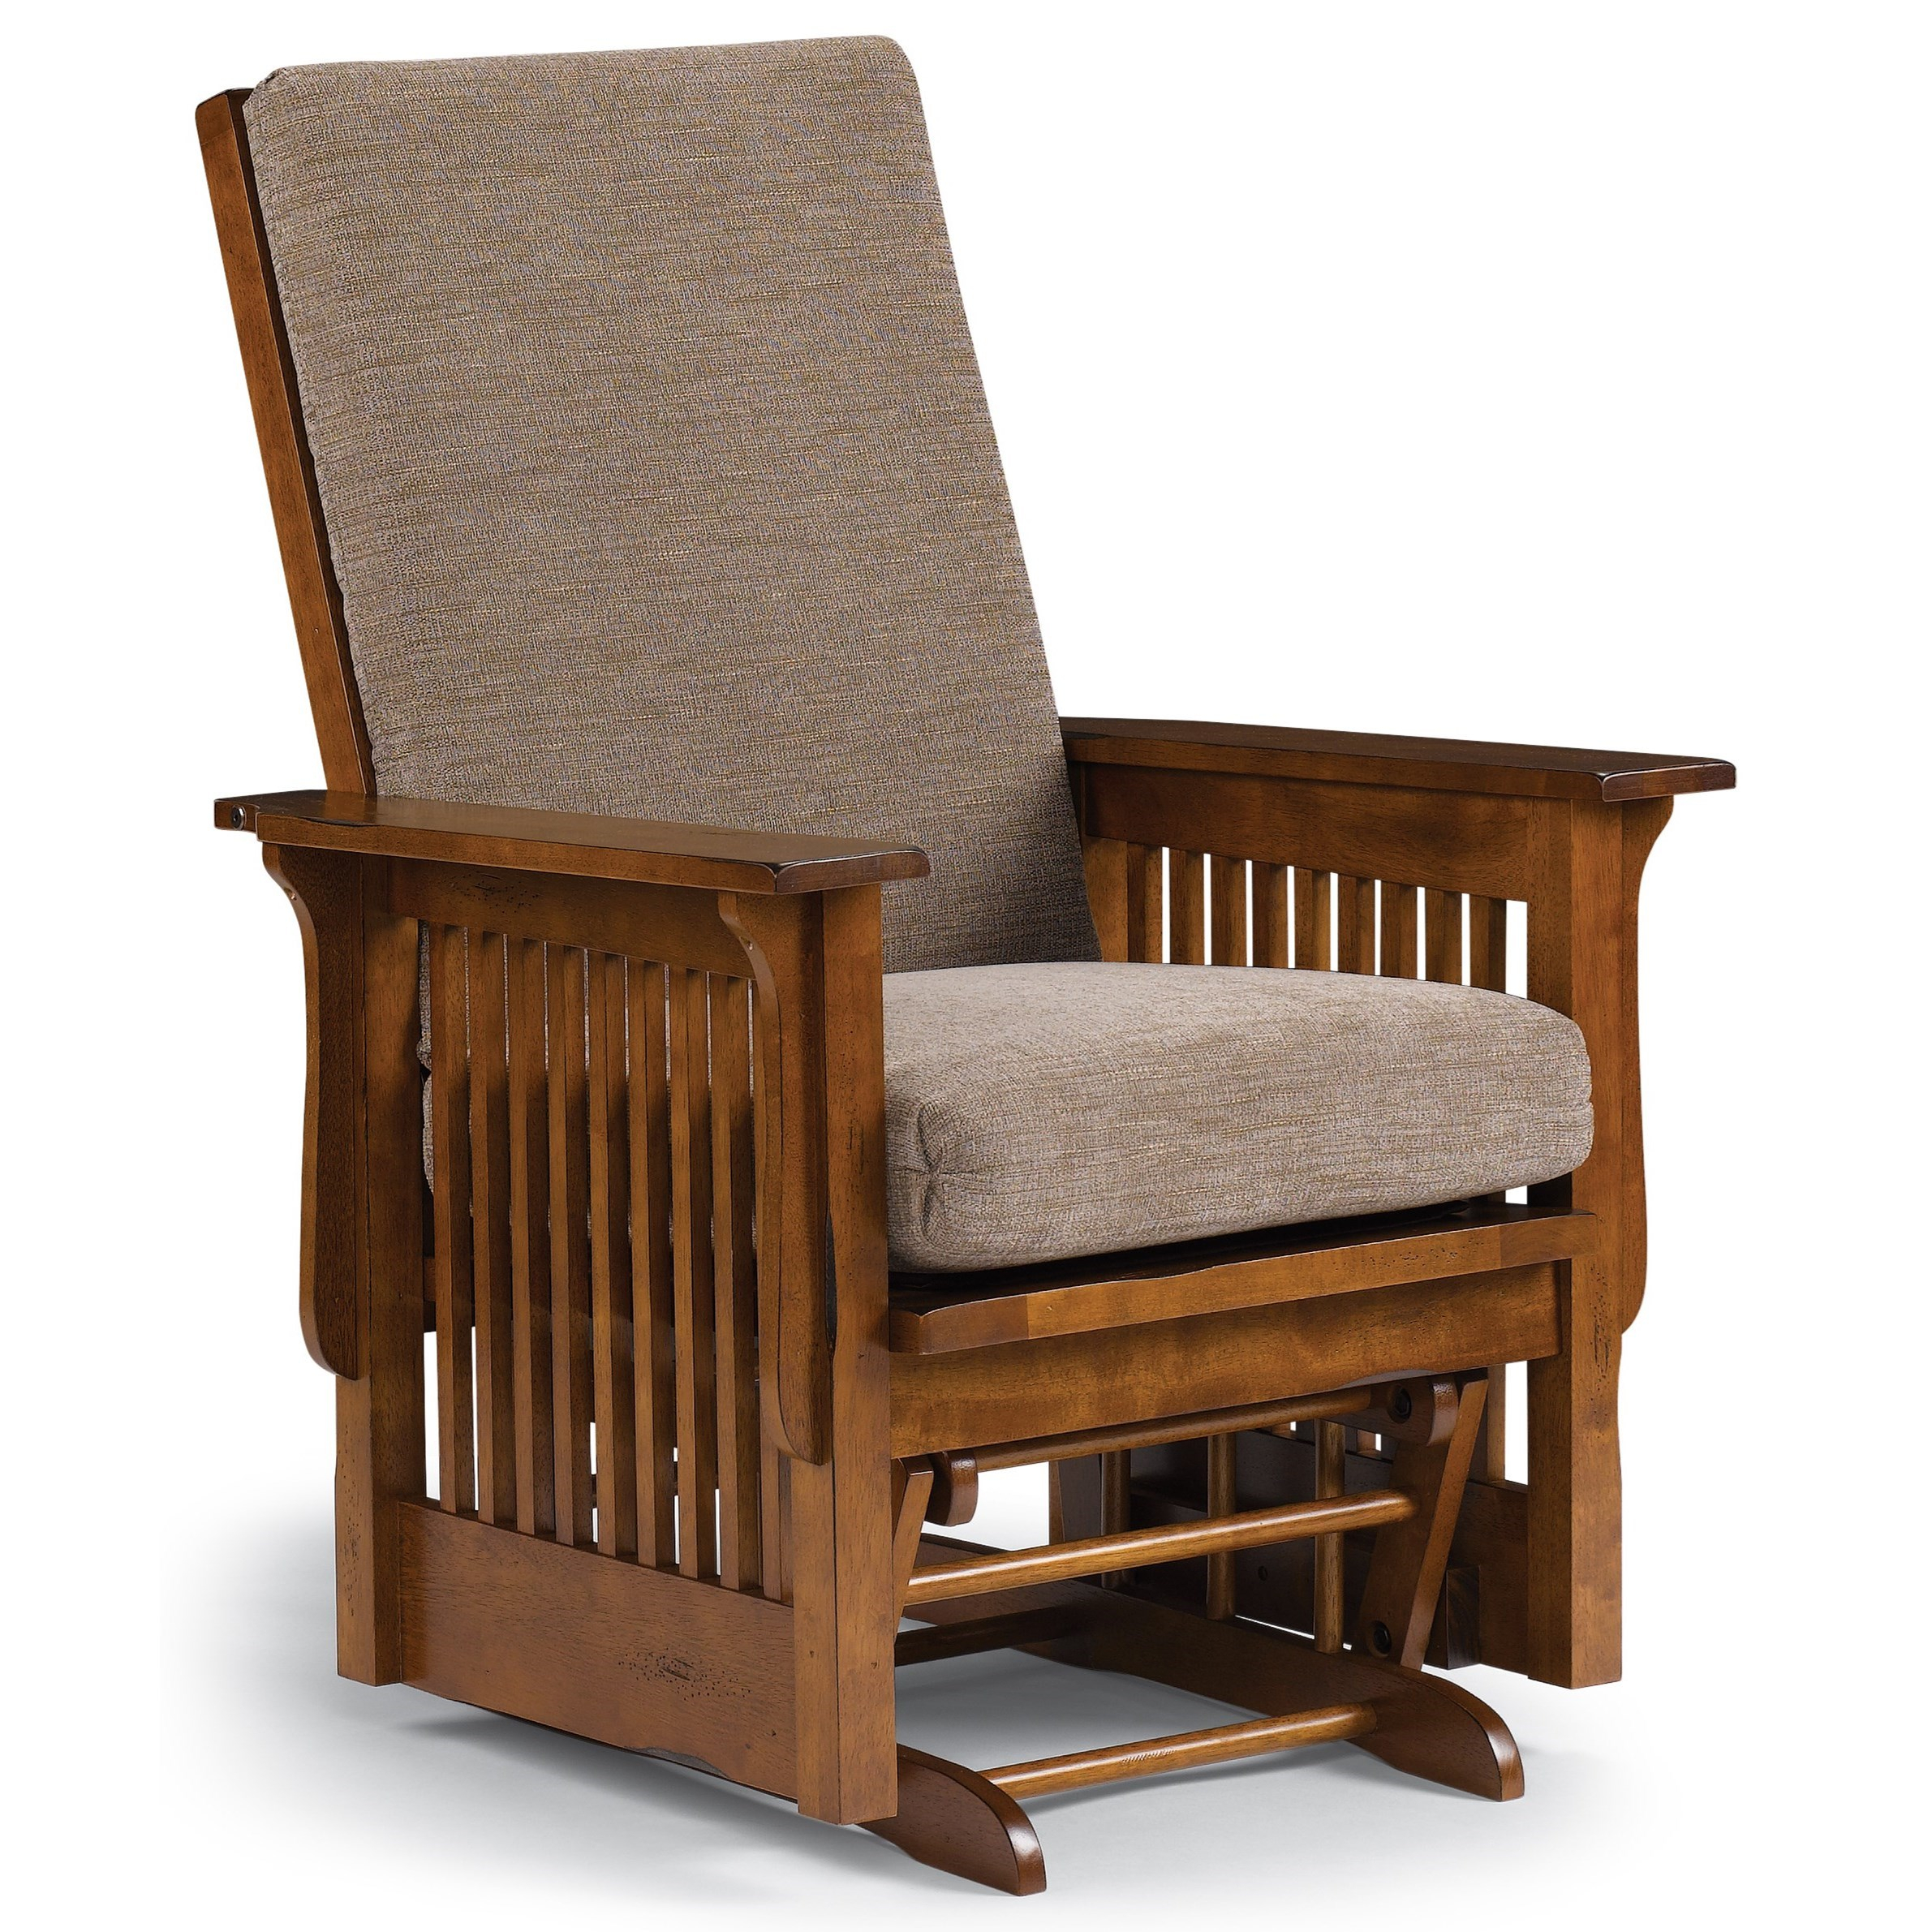 Best Home Furnishings Glide Rocker And Ottomans C8117Dp Inside Mission Design Wood Rocking Chairs With Brown Leather Seat (#5 of 20)